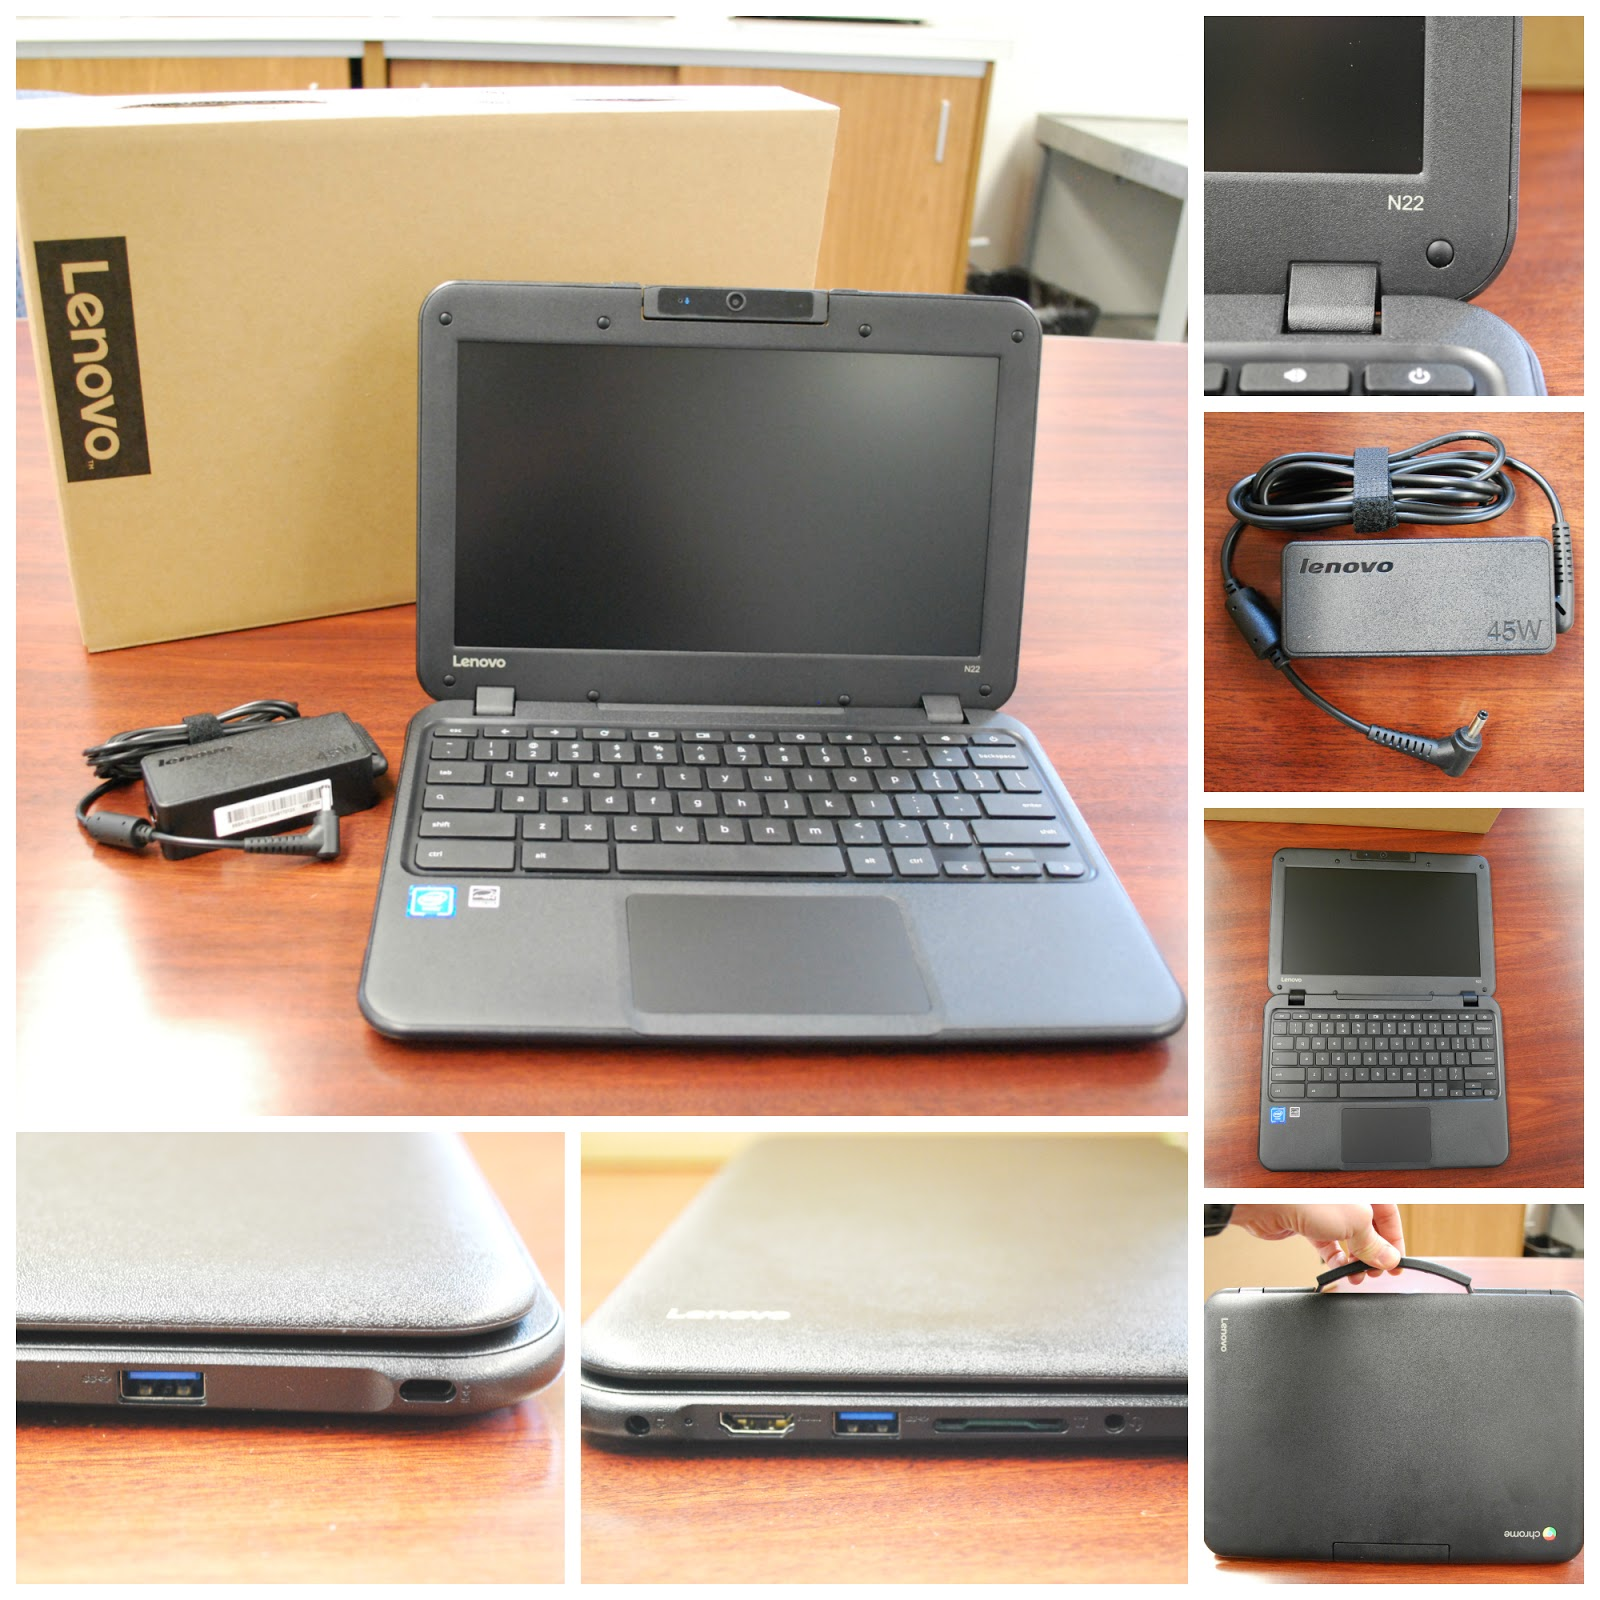 Leyden Techies: Student Reviews of the Lenovo N22 Chromebook